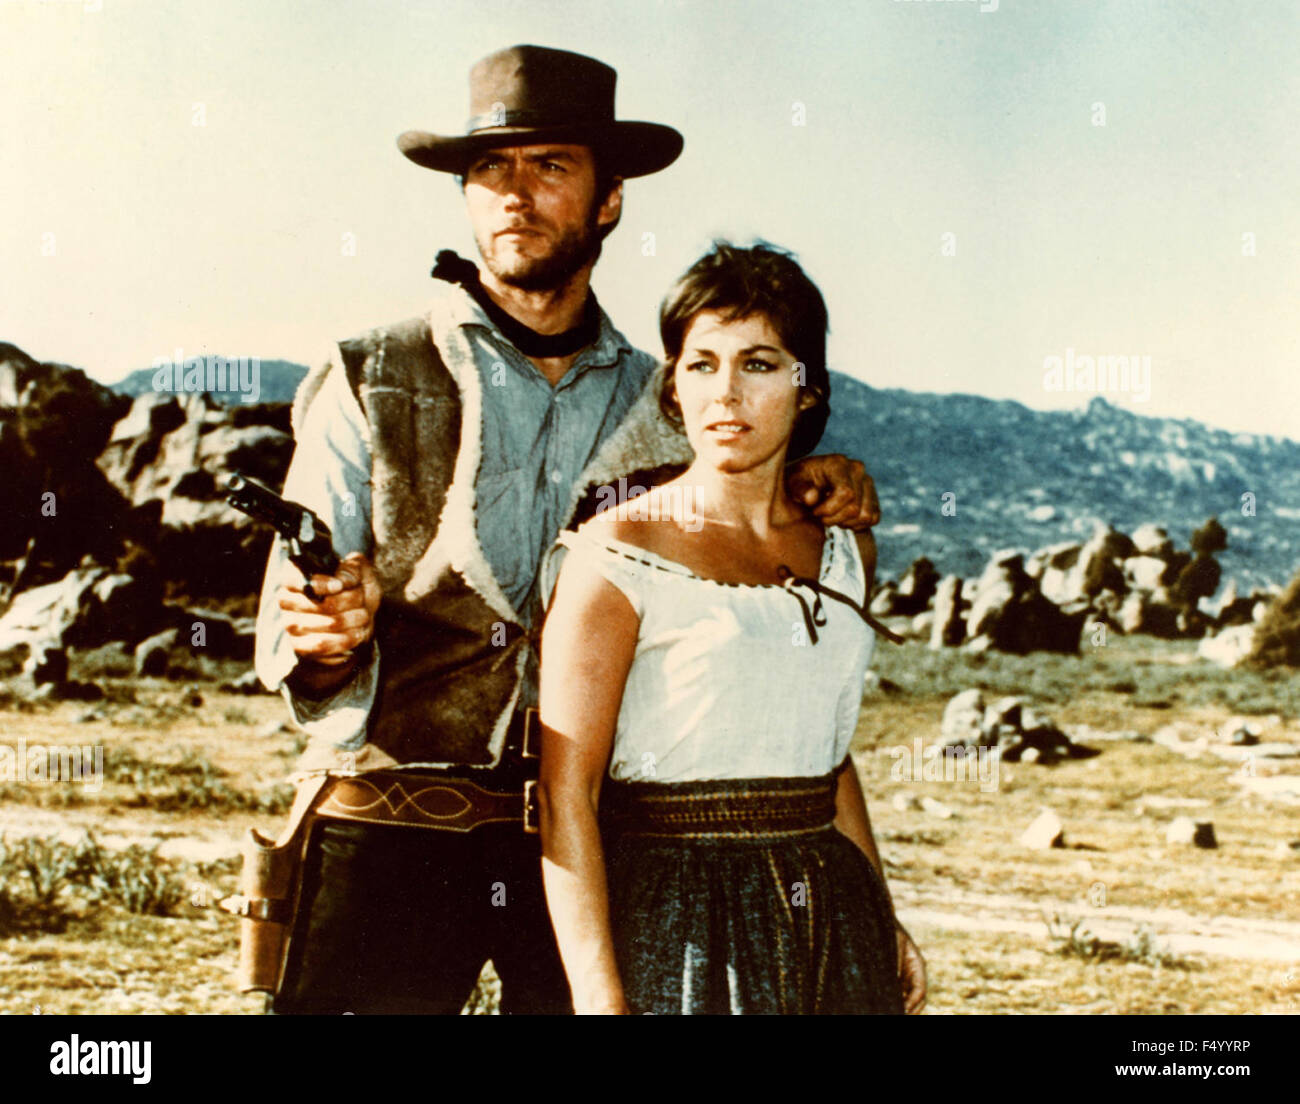 The American actor Clint Eastwood and Rada Rassimov in a scene from the film 'The Good, the Bad and the Ugly', - Stock Image